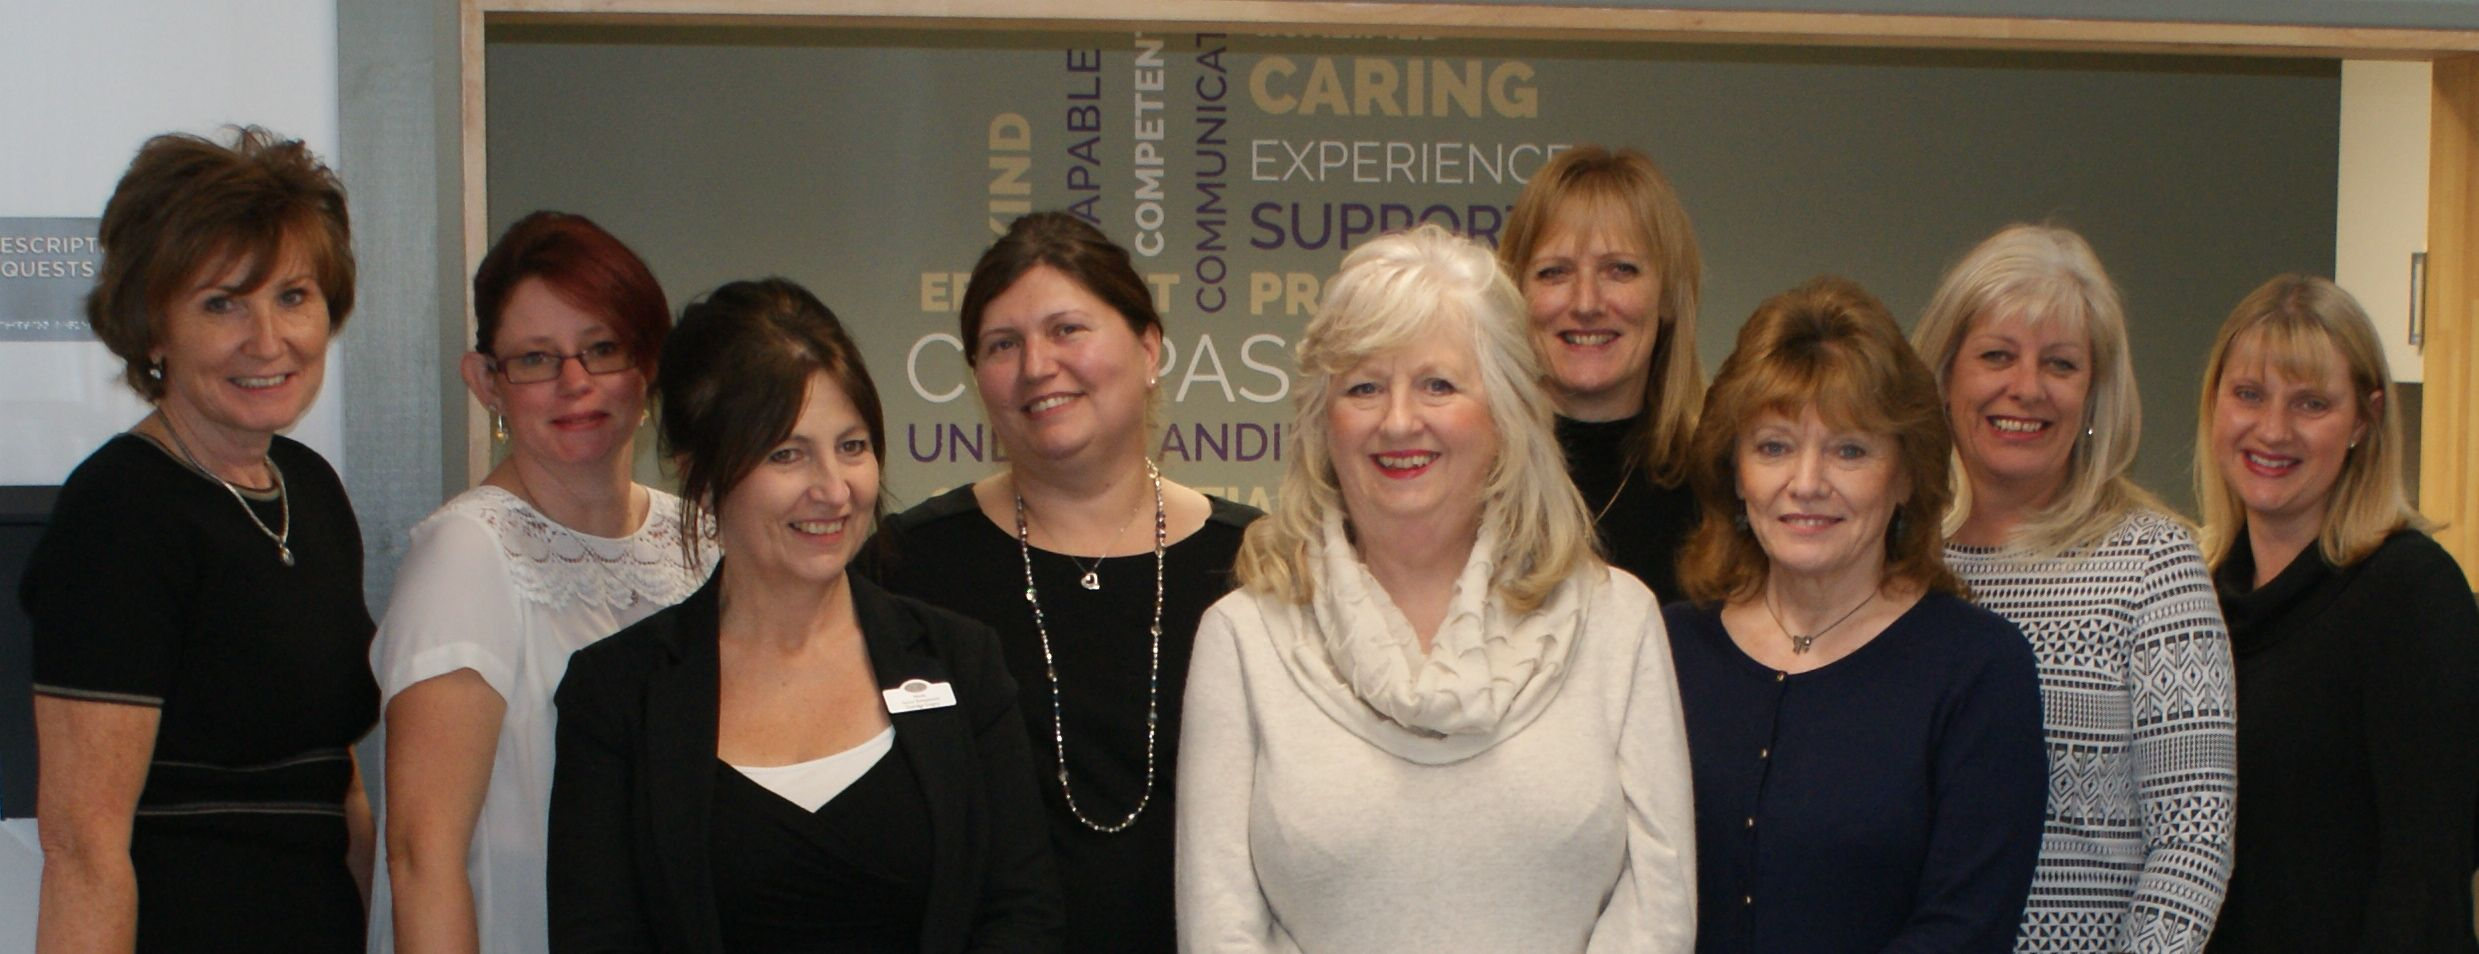 The reception and Administration team